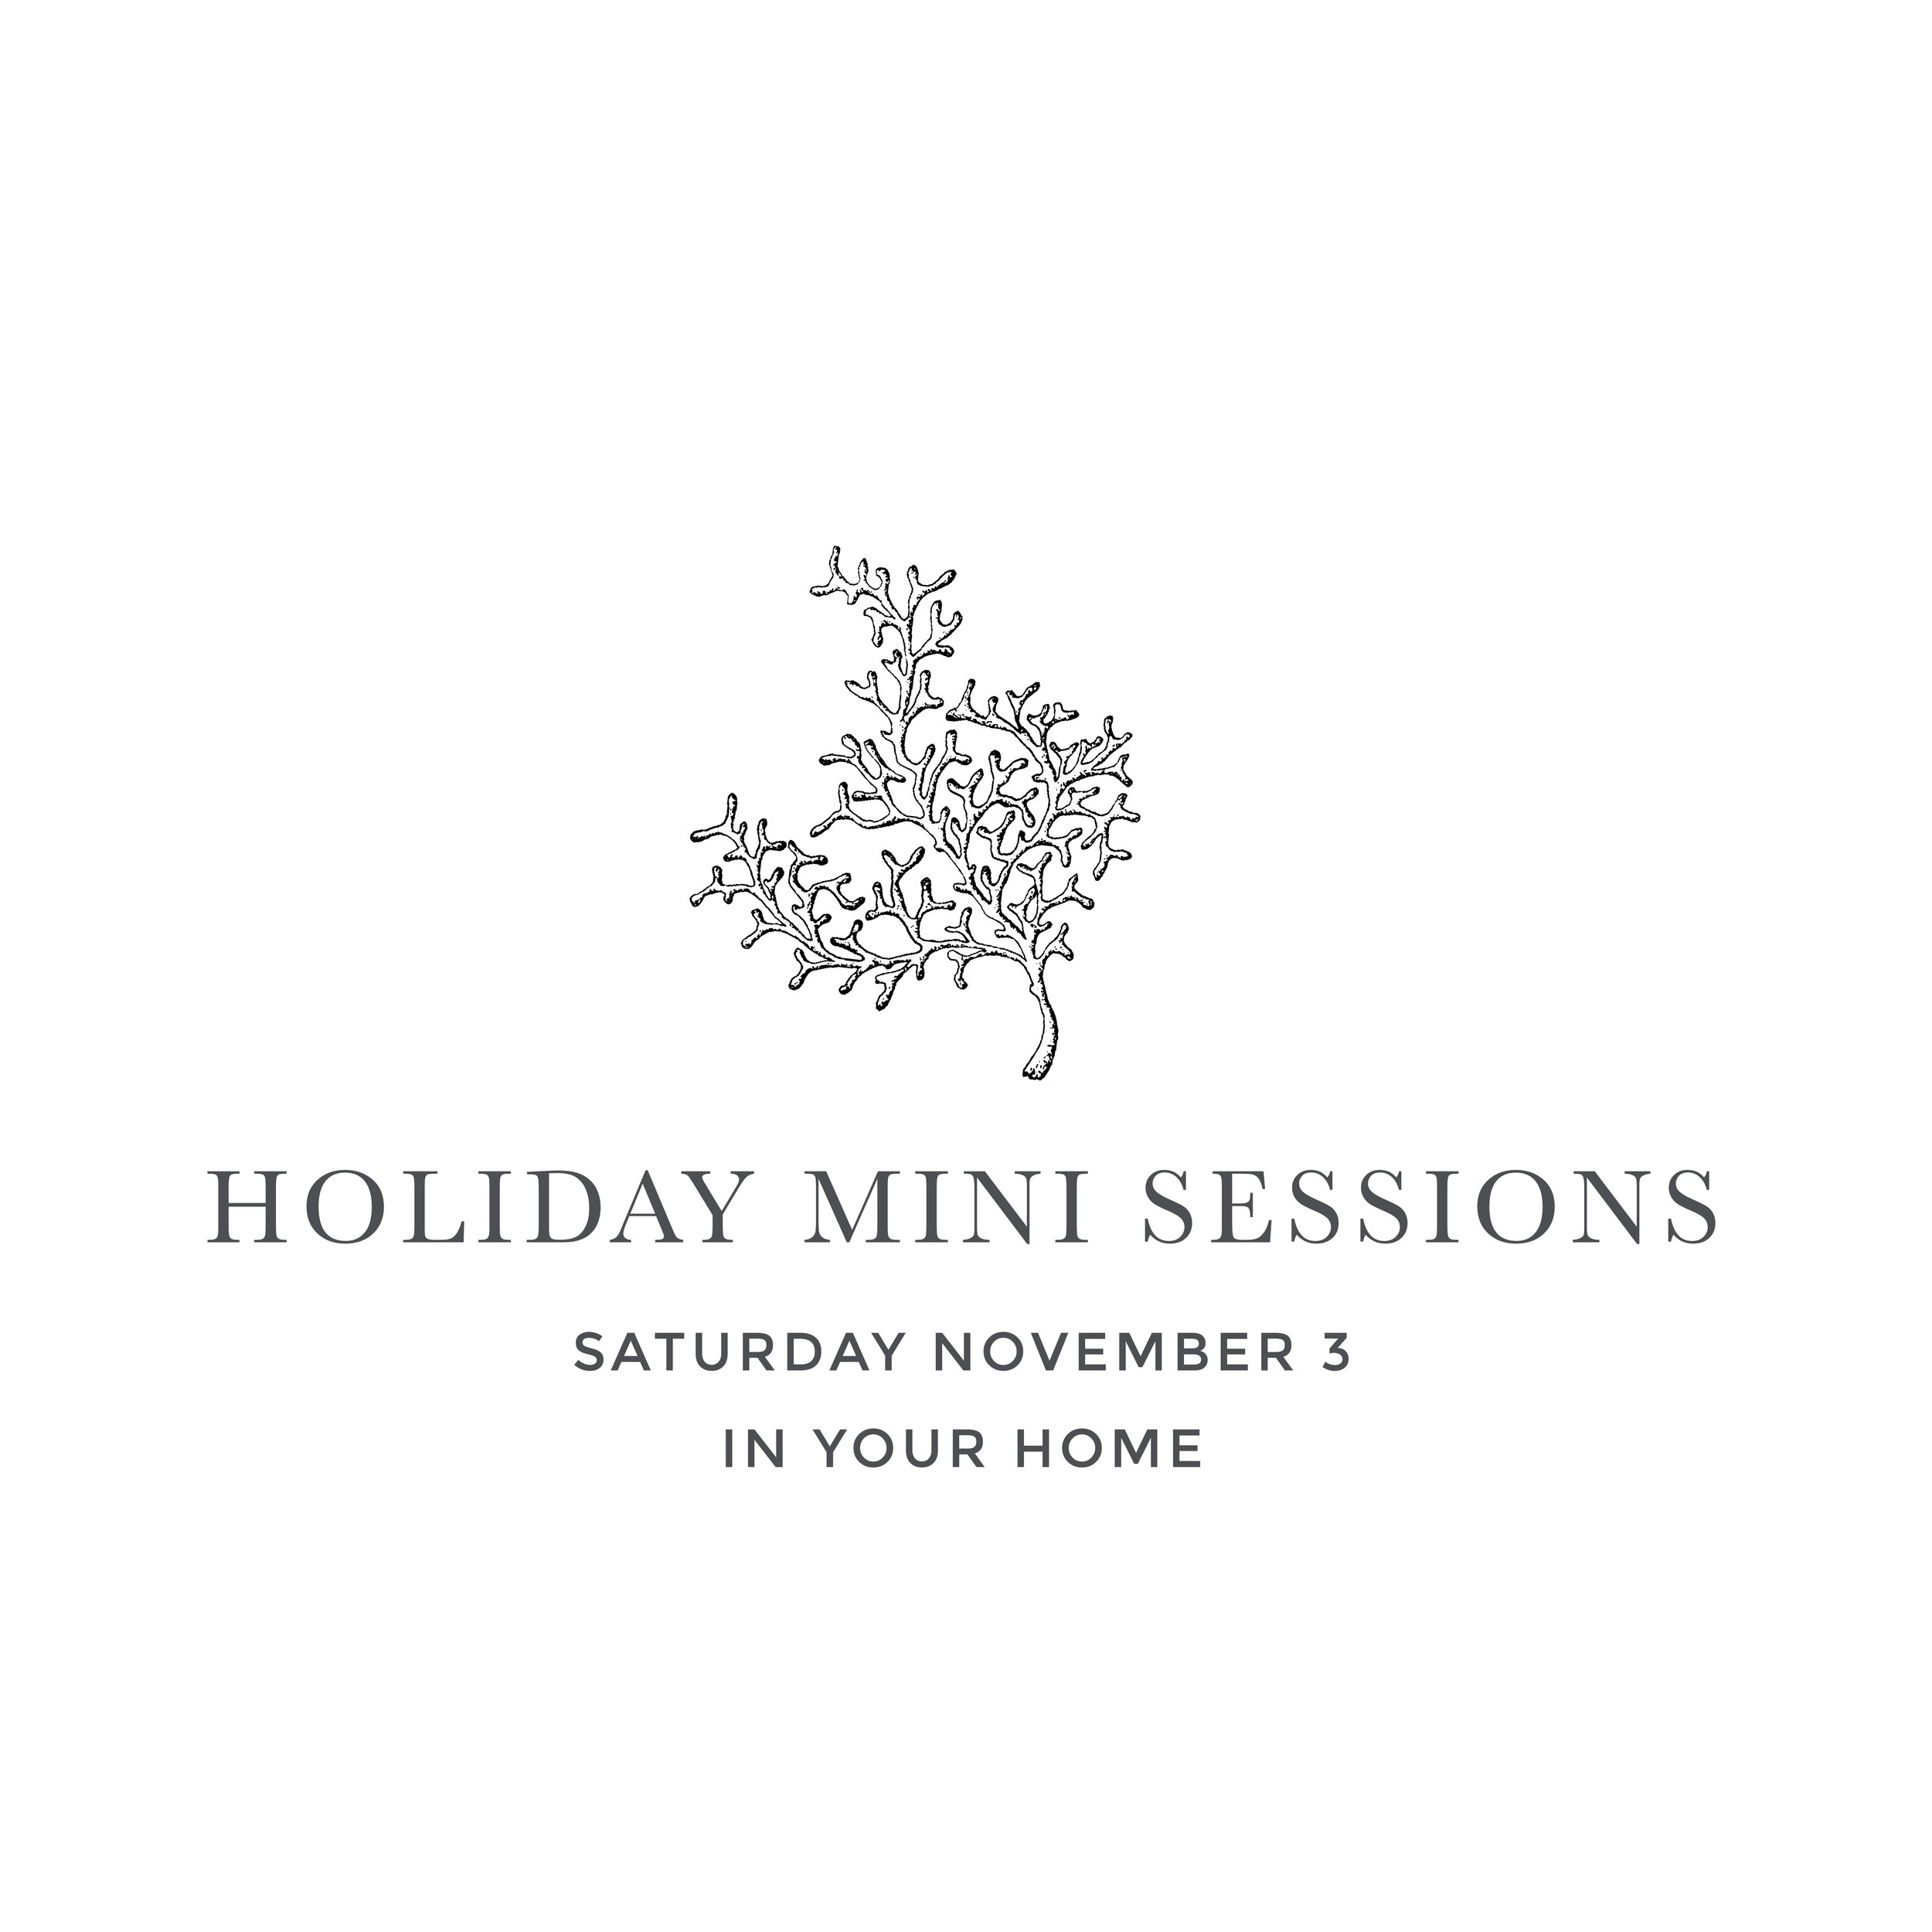 Stacey Woods Holiday Mini Sessions